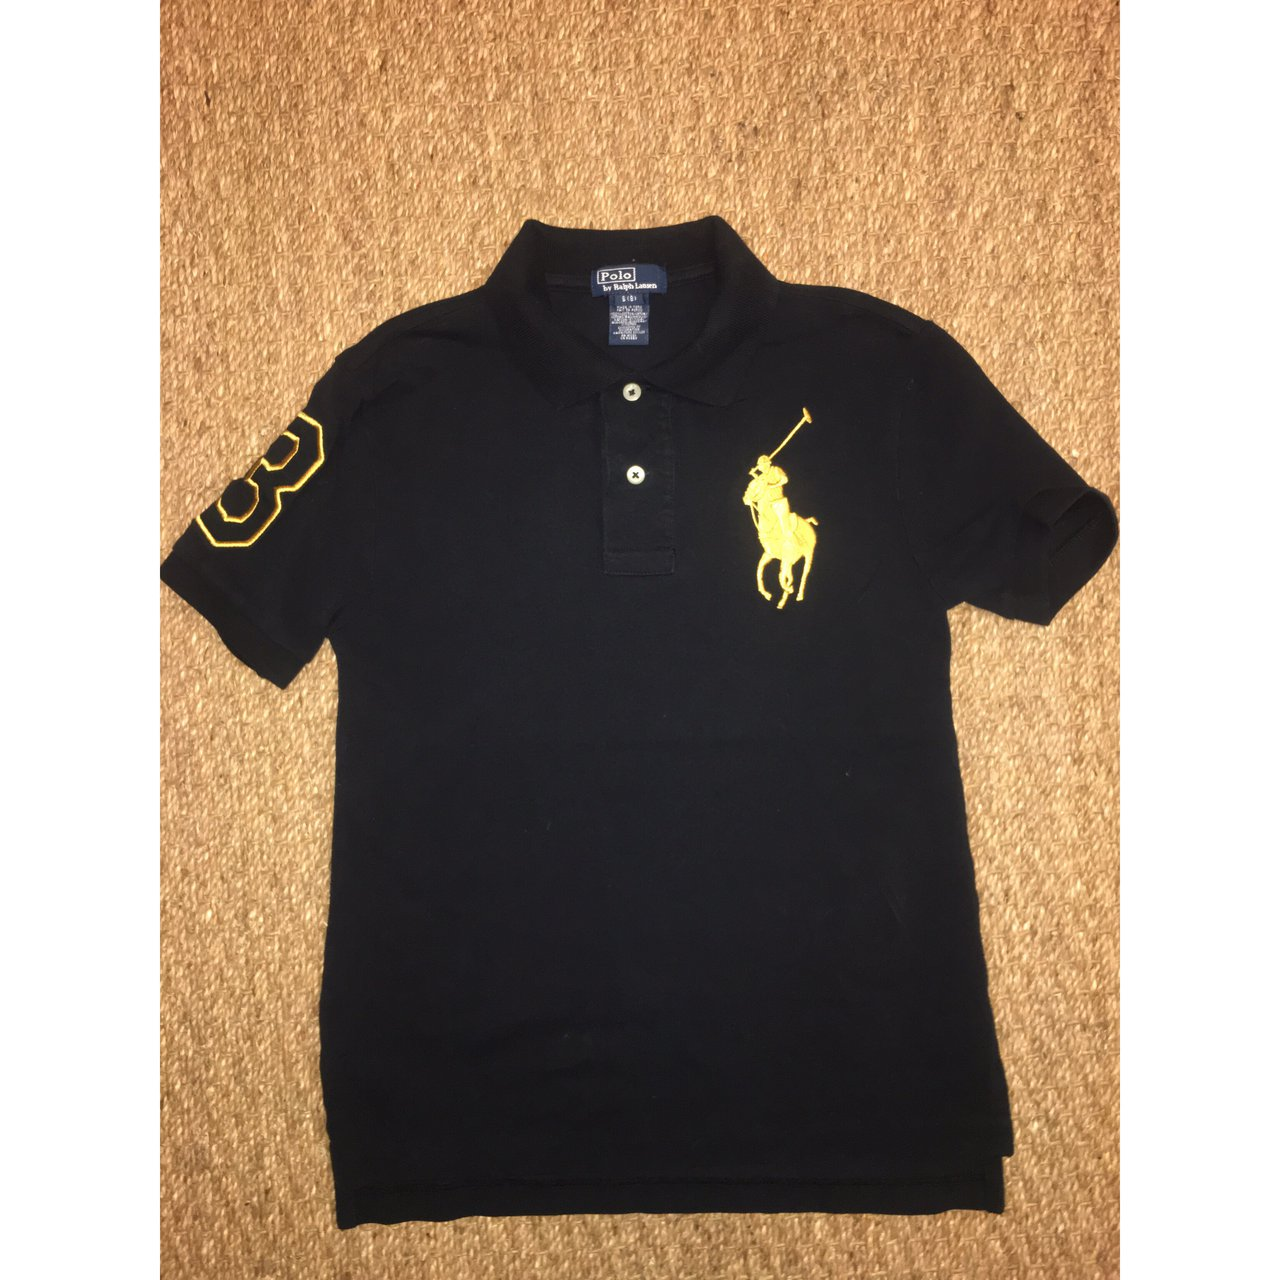 b5a40794607 Like•New Ralph Lauren Big Pony Polo Shirt Size with a